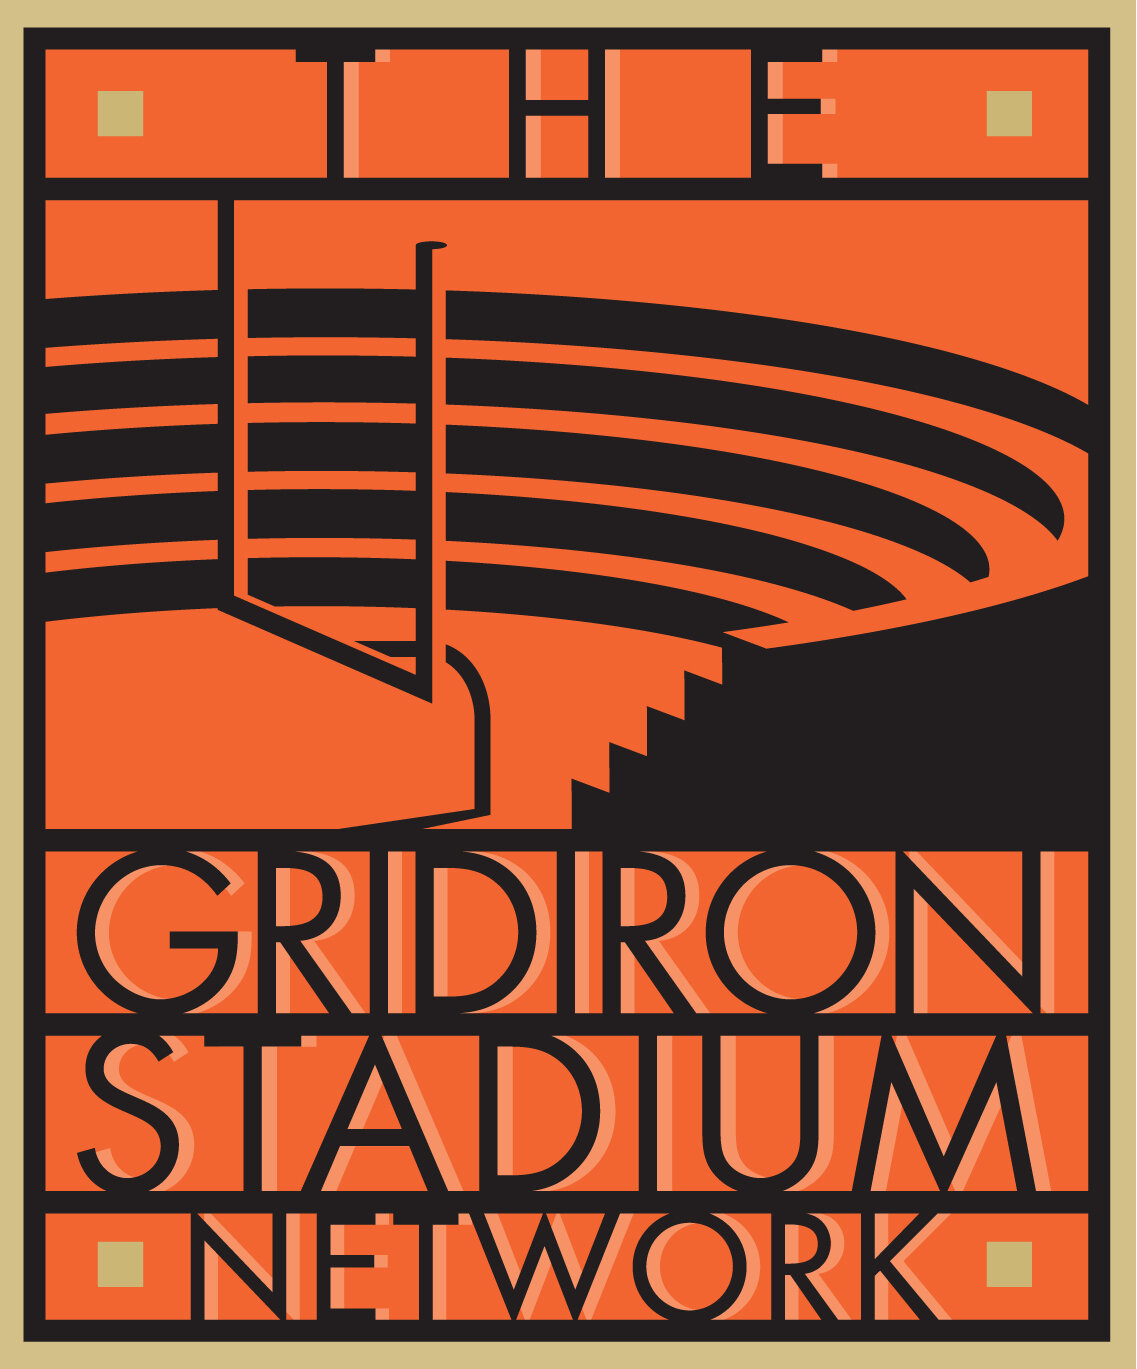 Gridiron Stadium Network